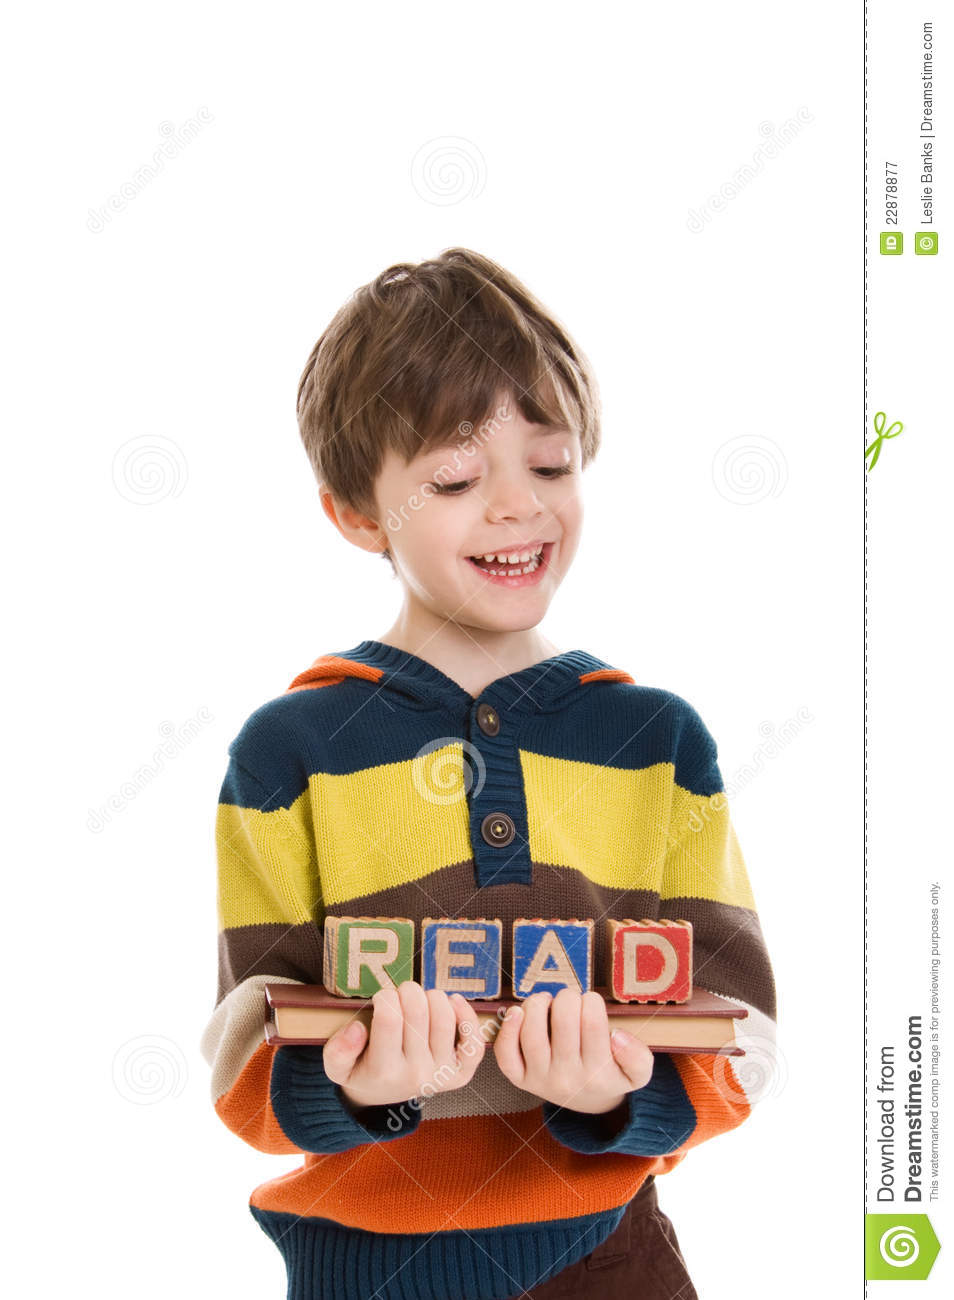 Child with book and blocks